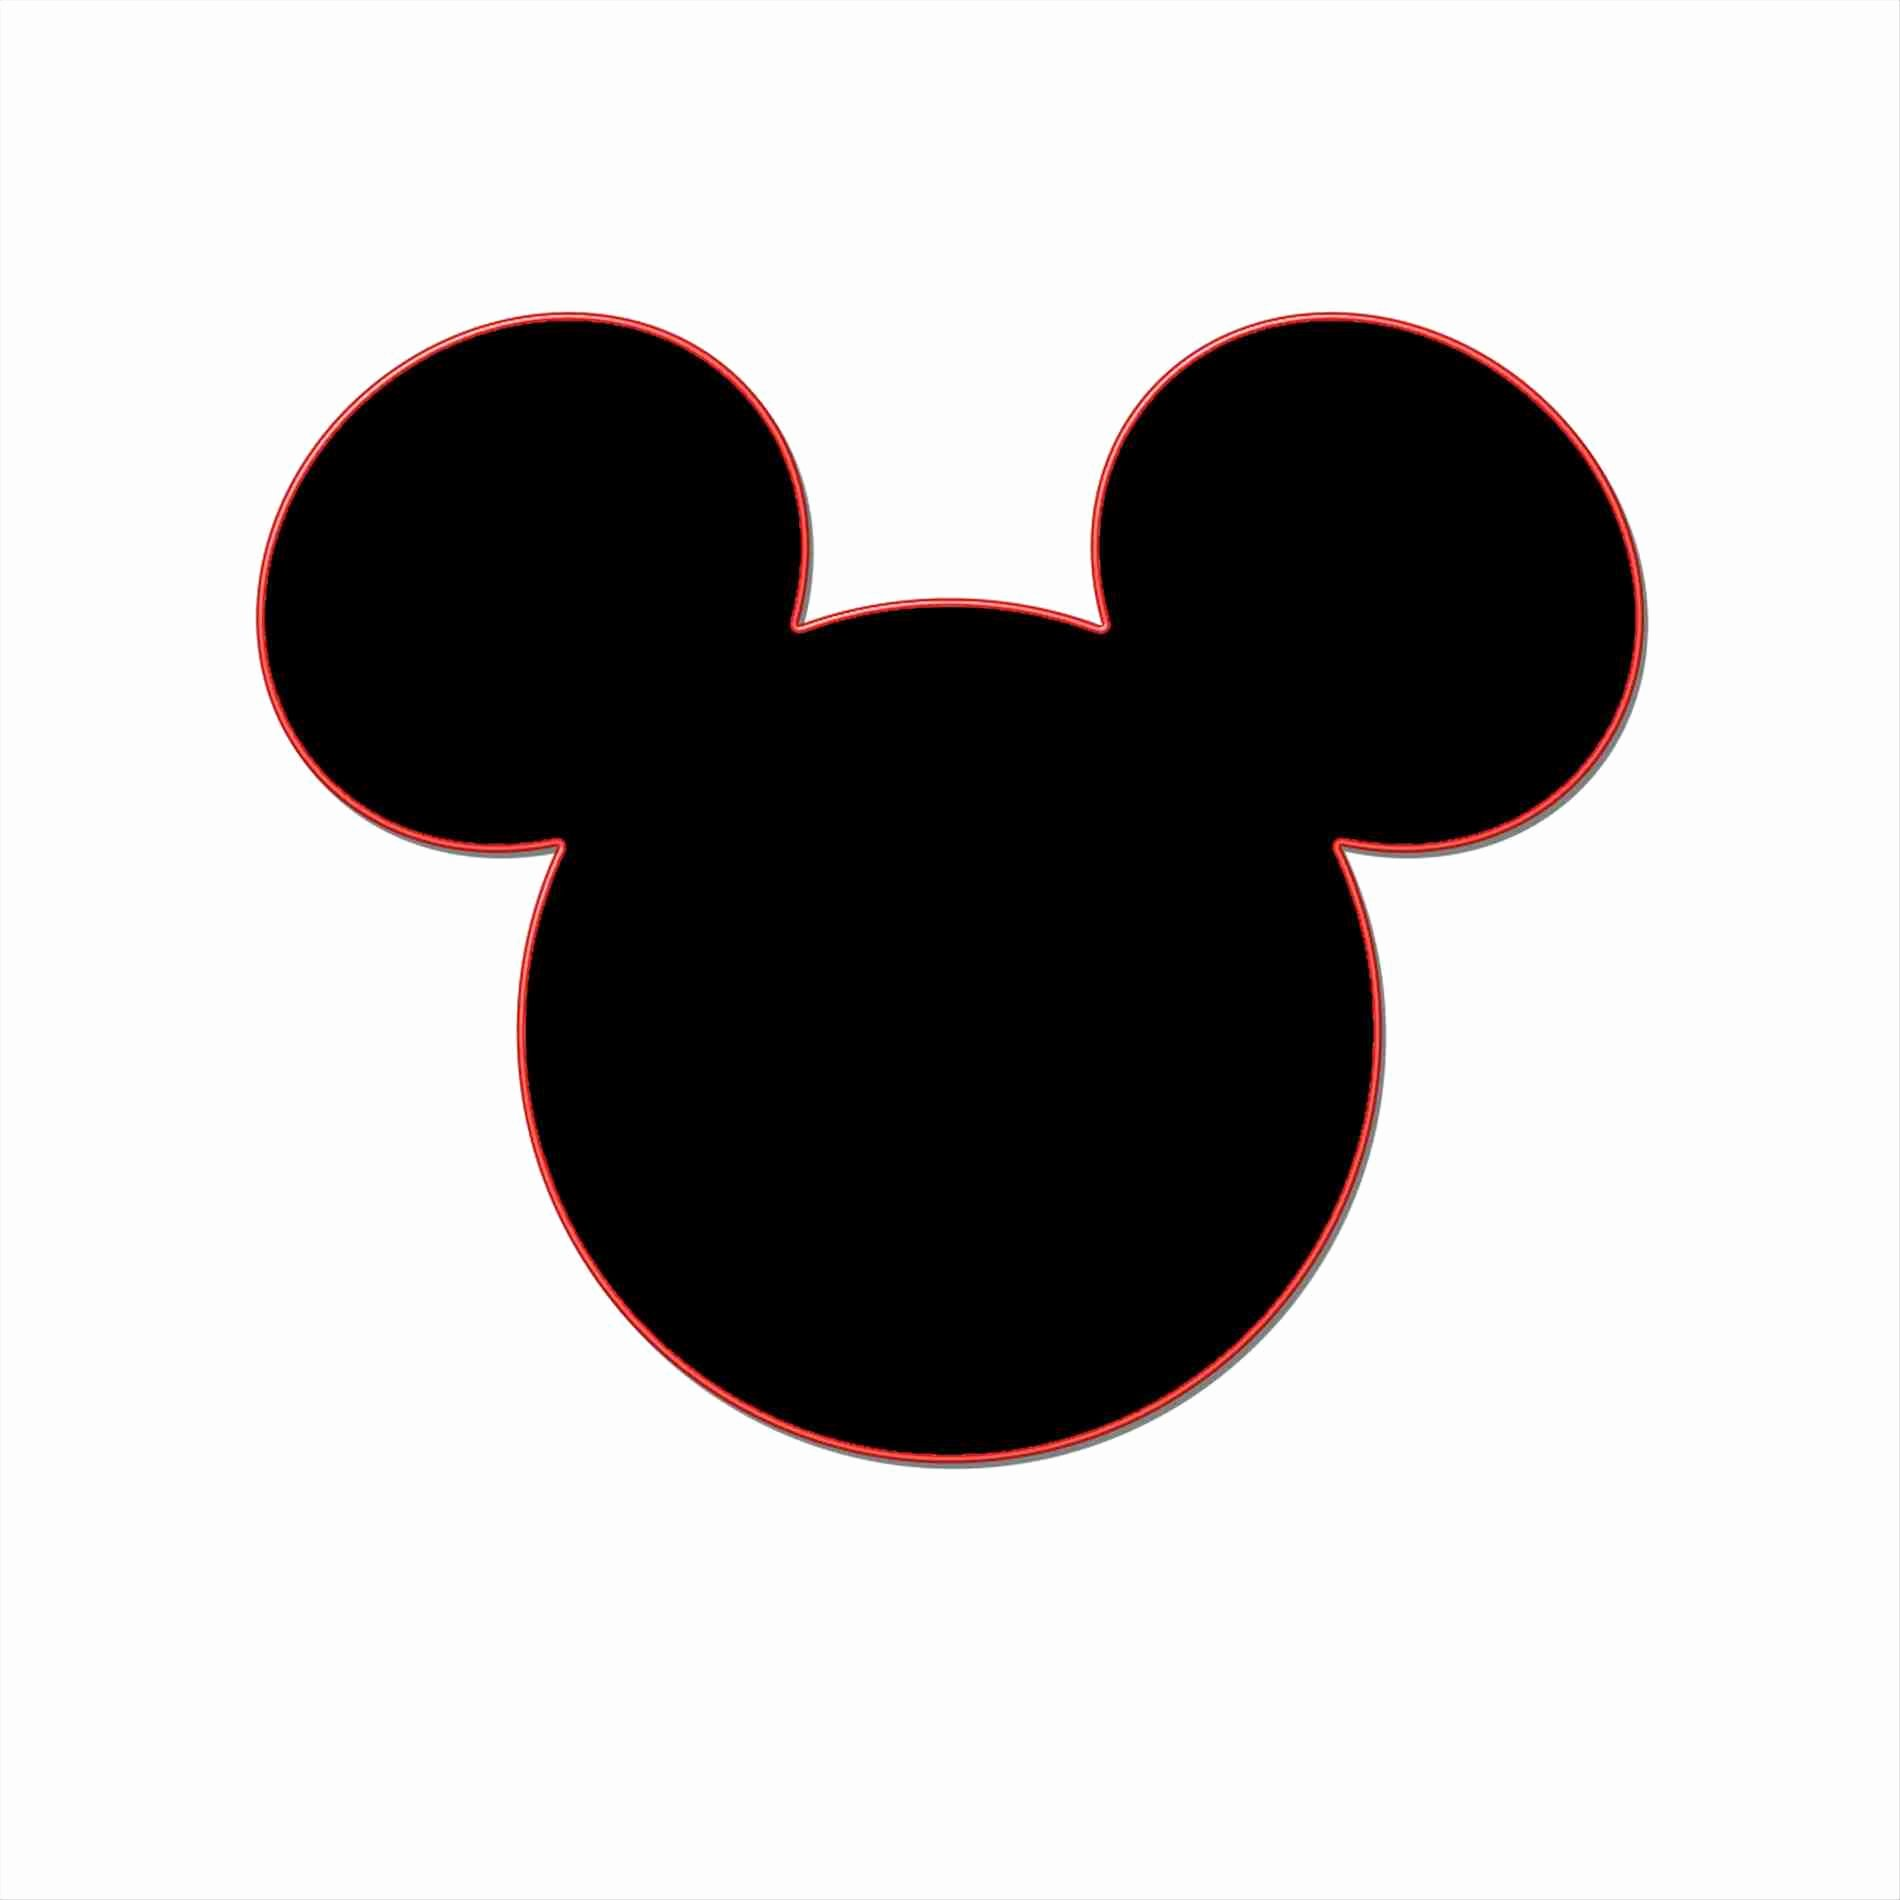 Mickey Mouse Silhouette Printable Fresh Mickey Mouse Silhouette Template at Getdrawings